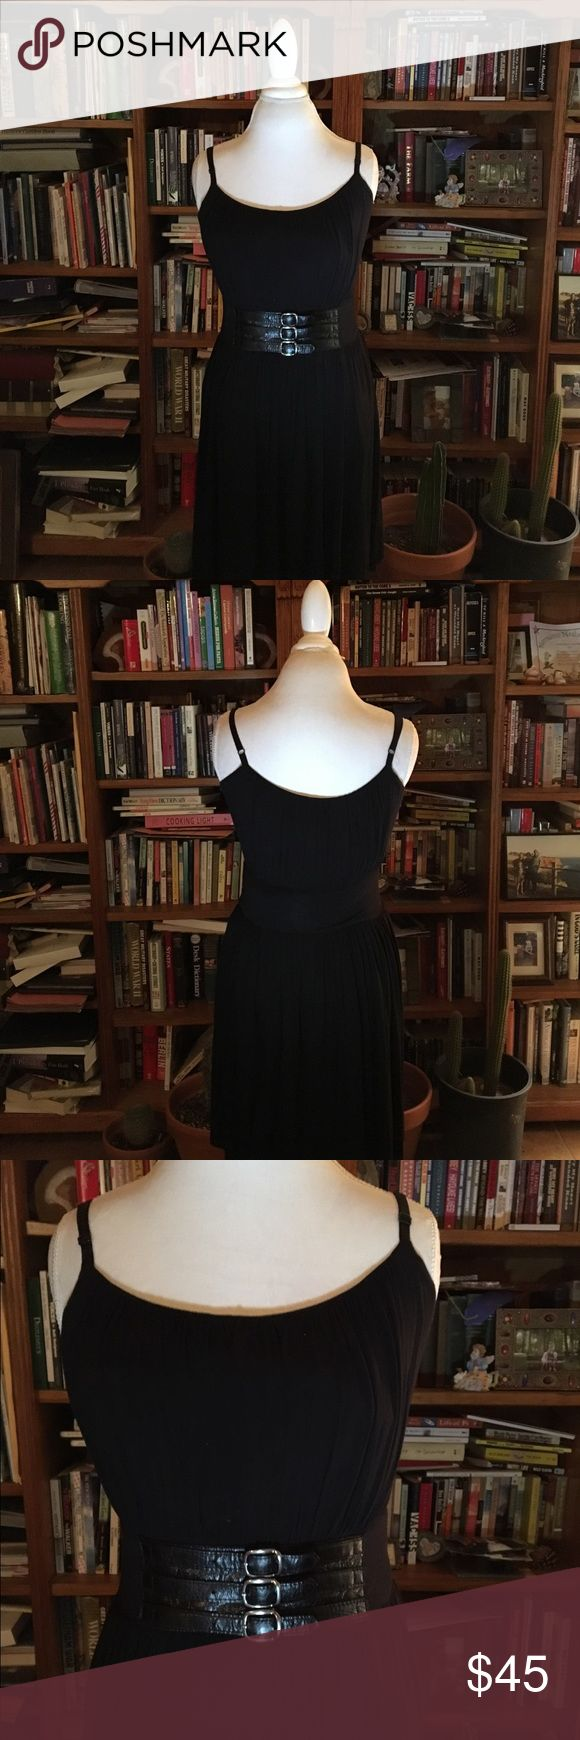 BAILEY 44 Corset Belt Dress Excellent Condition Bailey 44 Corset Belt Dress   Comfortable Jersey Knit fabric. Approx measurements: bust: 36 waist: 30 inches.) Allows for some stretch if needed. Bailey 44 Dresses